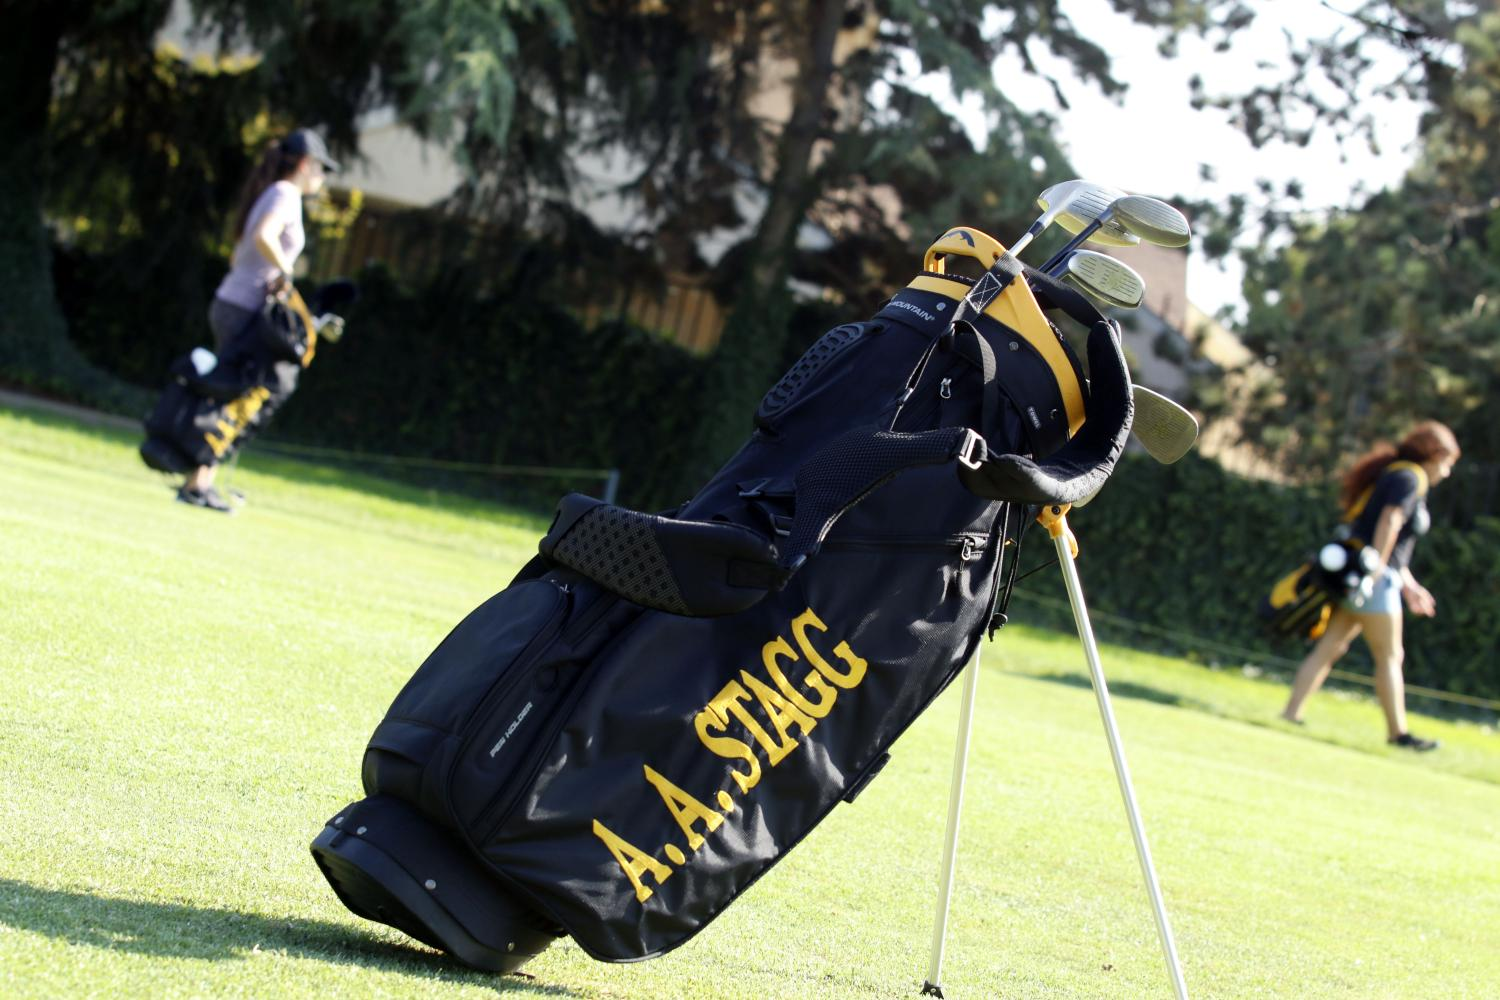 The girls carry their bags to go practice their swing.